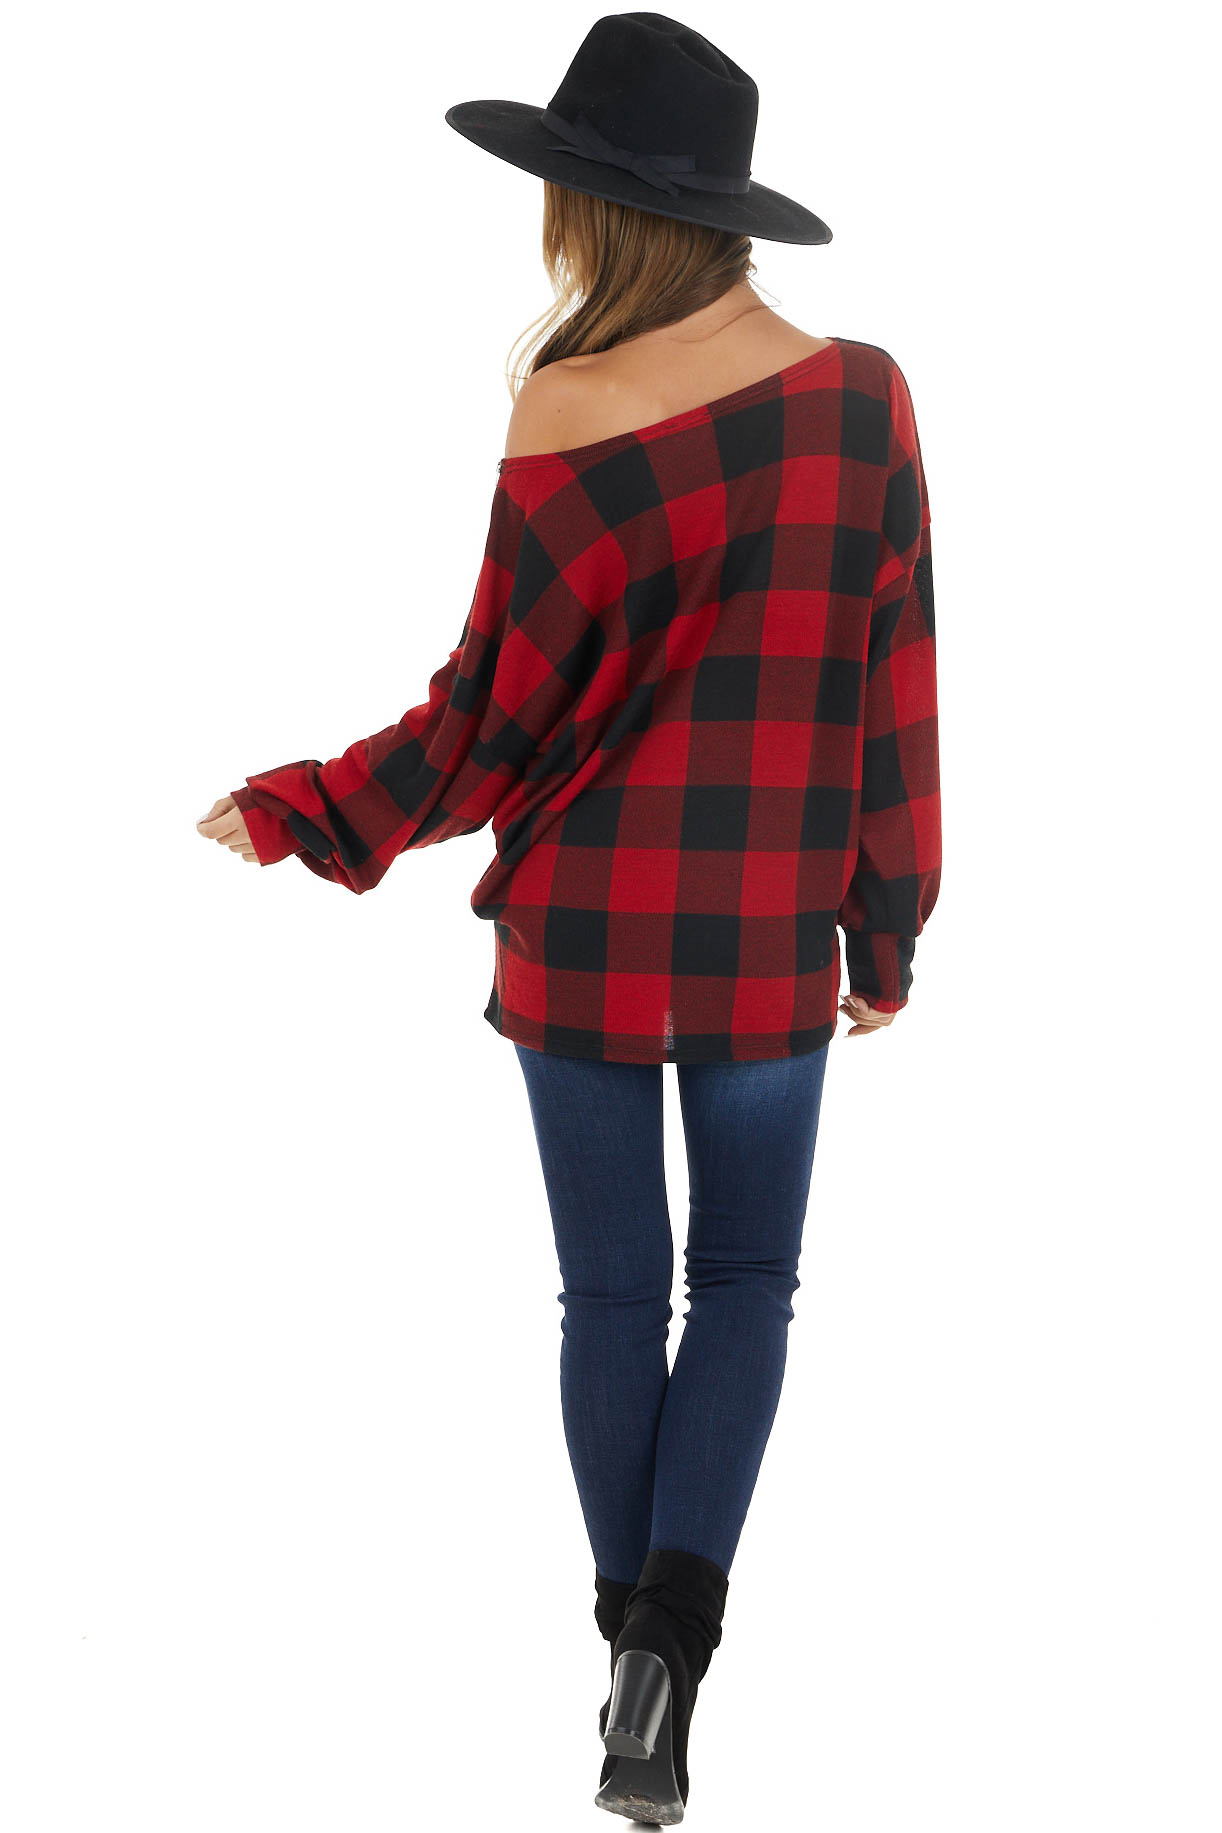 Black and Cherry Red Buffalo Plaid Top with Zipper Detail